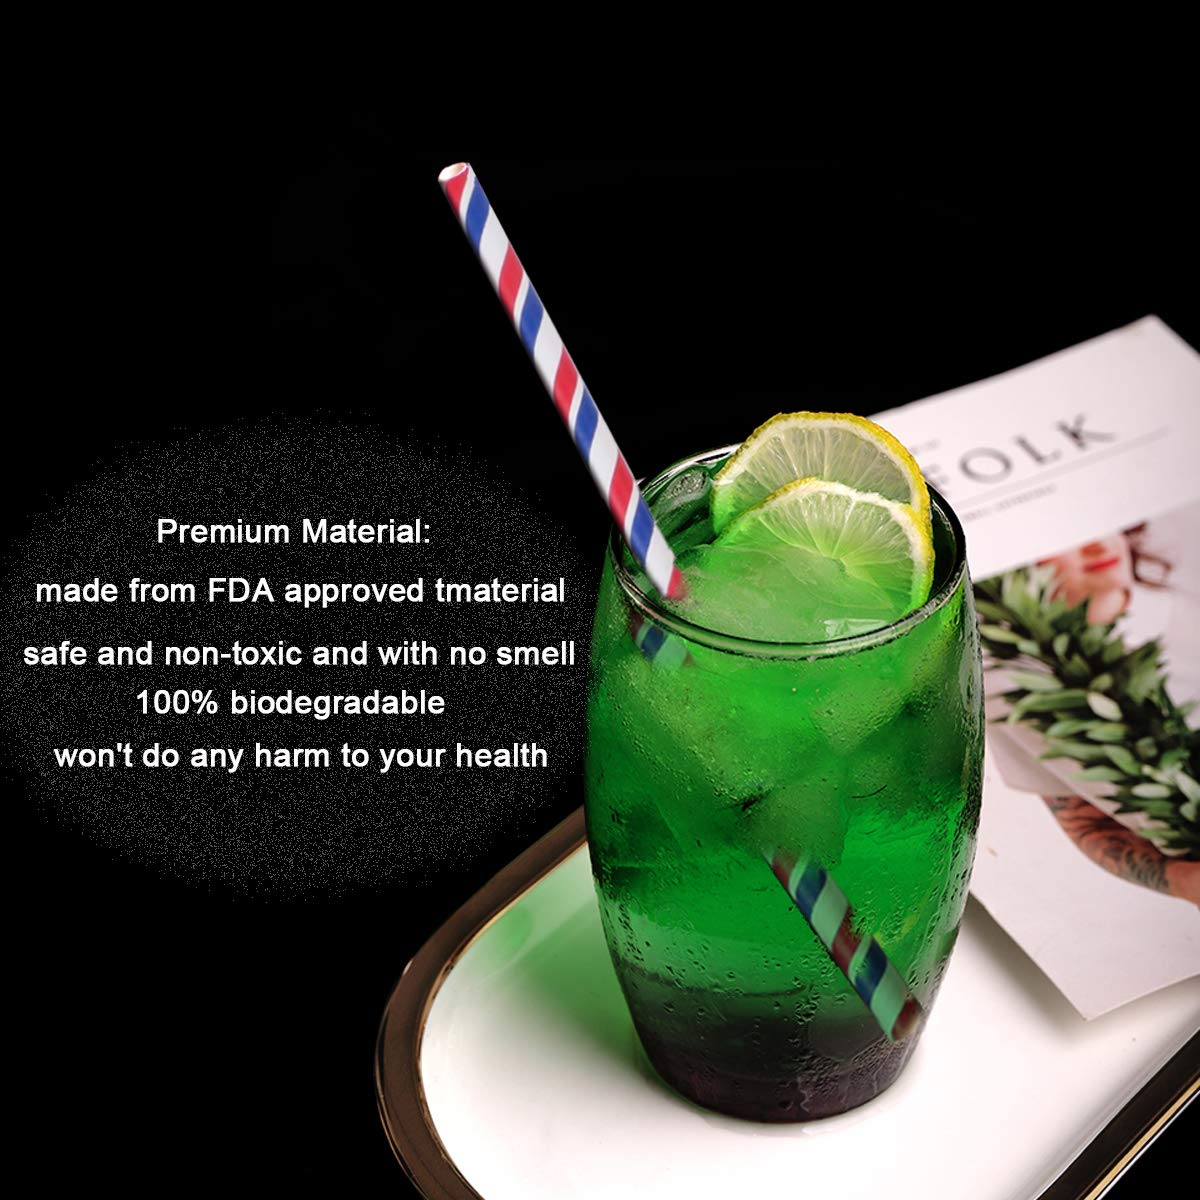 Triple Layer Technology Disposables Drinking Straws for Kids Parties and Daily Environmentally Friendly 300pcs Tricolour Striped Paper Straw Natural Tasteless PASEP Paper Straws Biodegradable